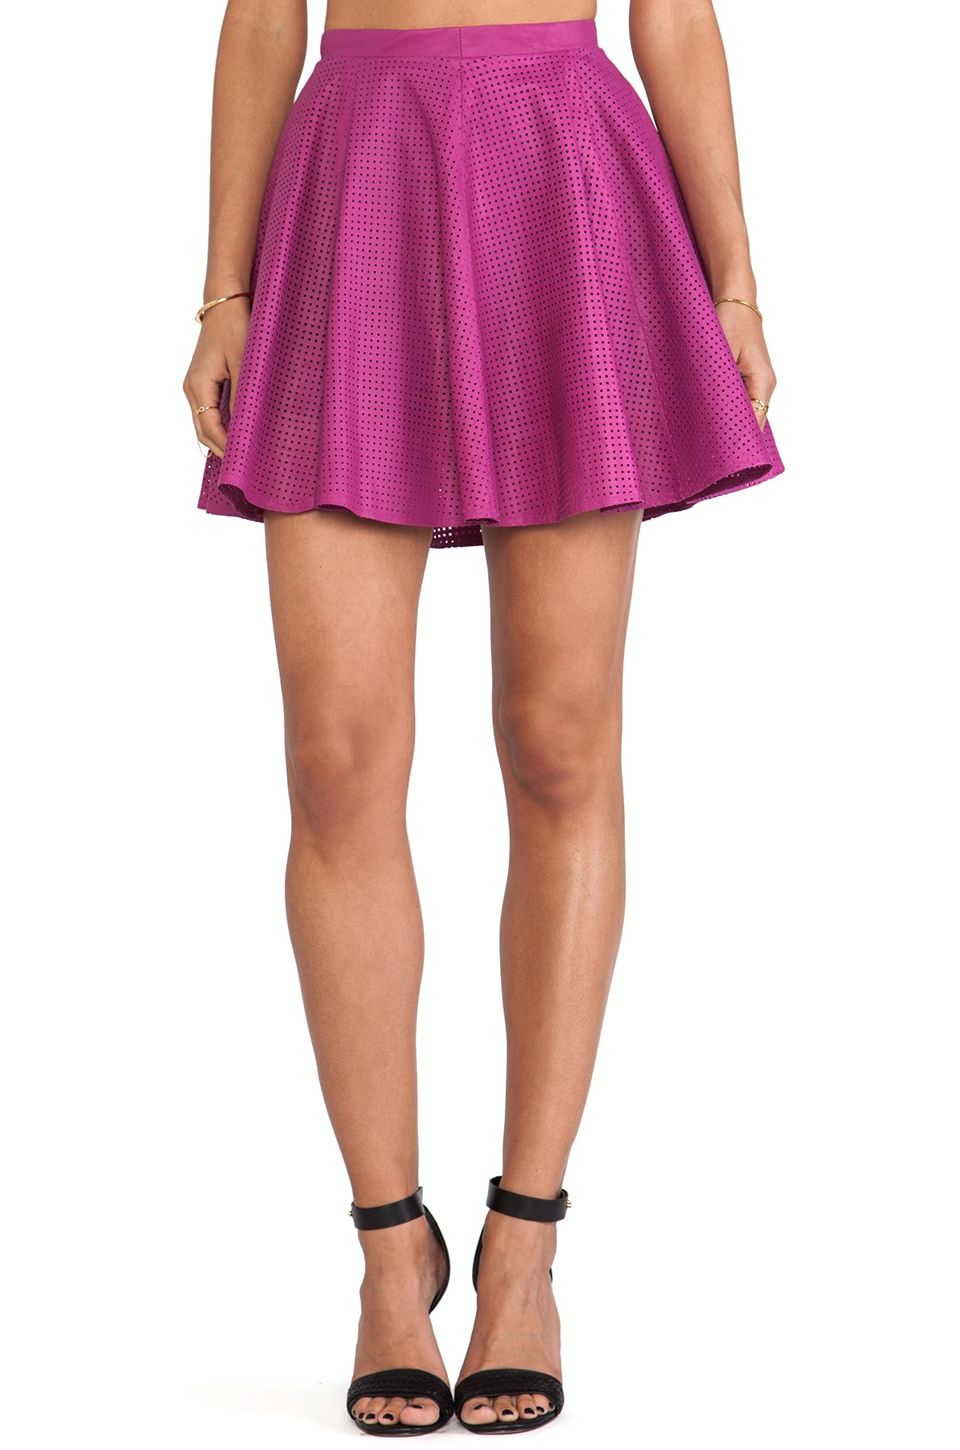 LAMARQUE Aria Skirt in Fuchsia